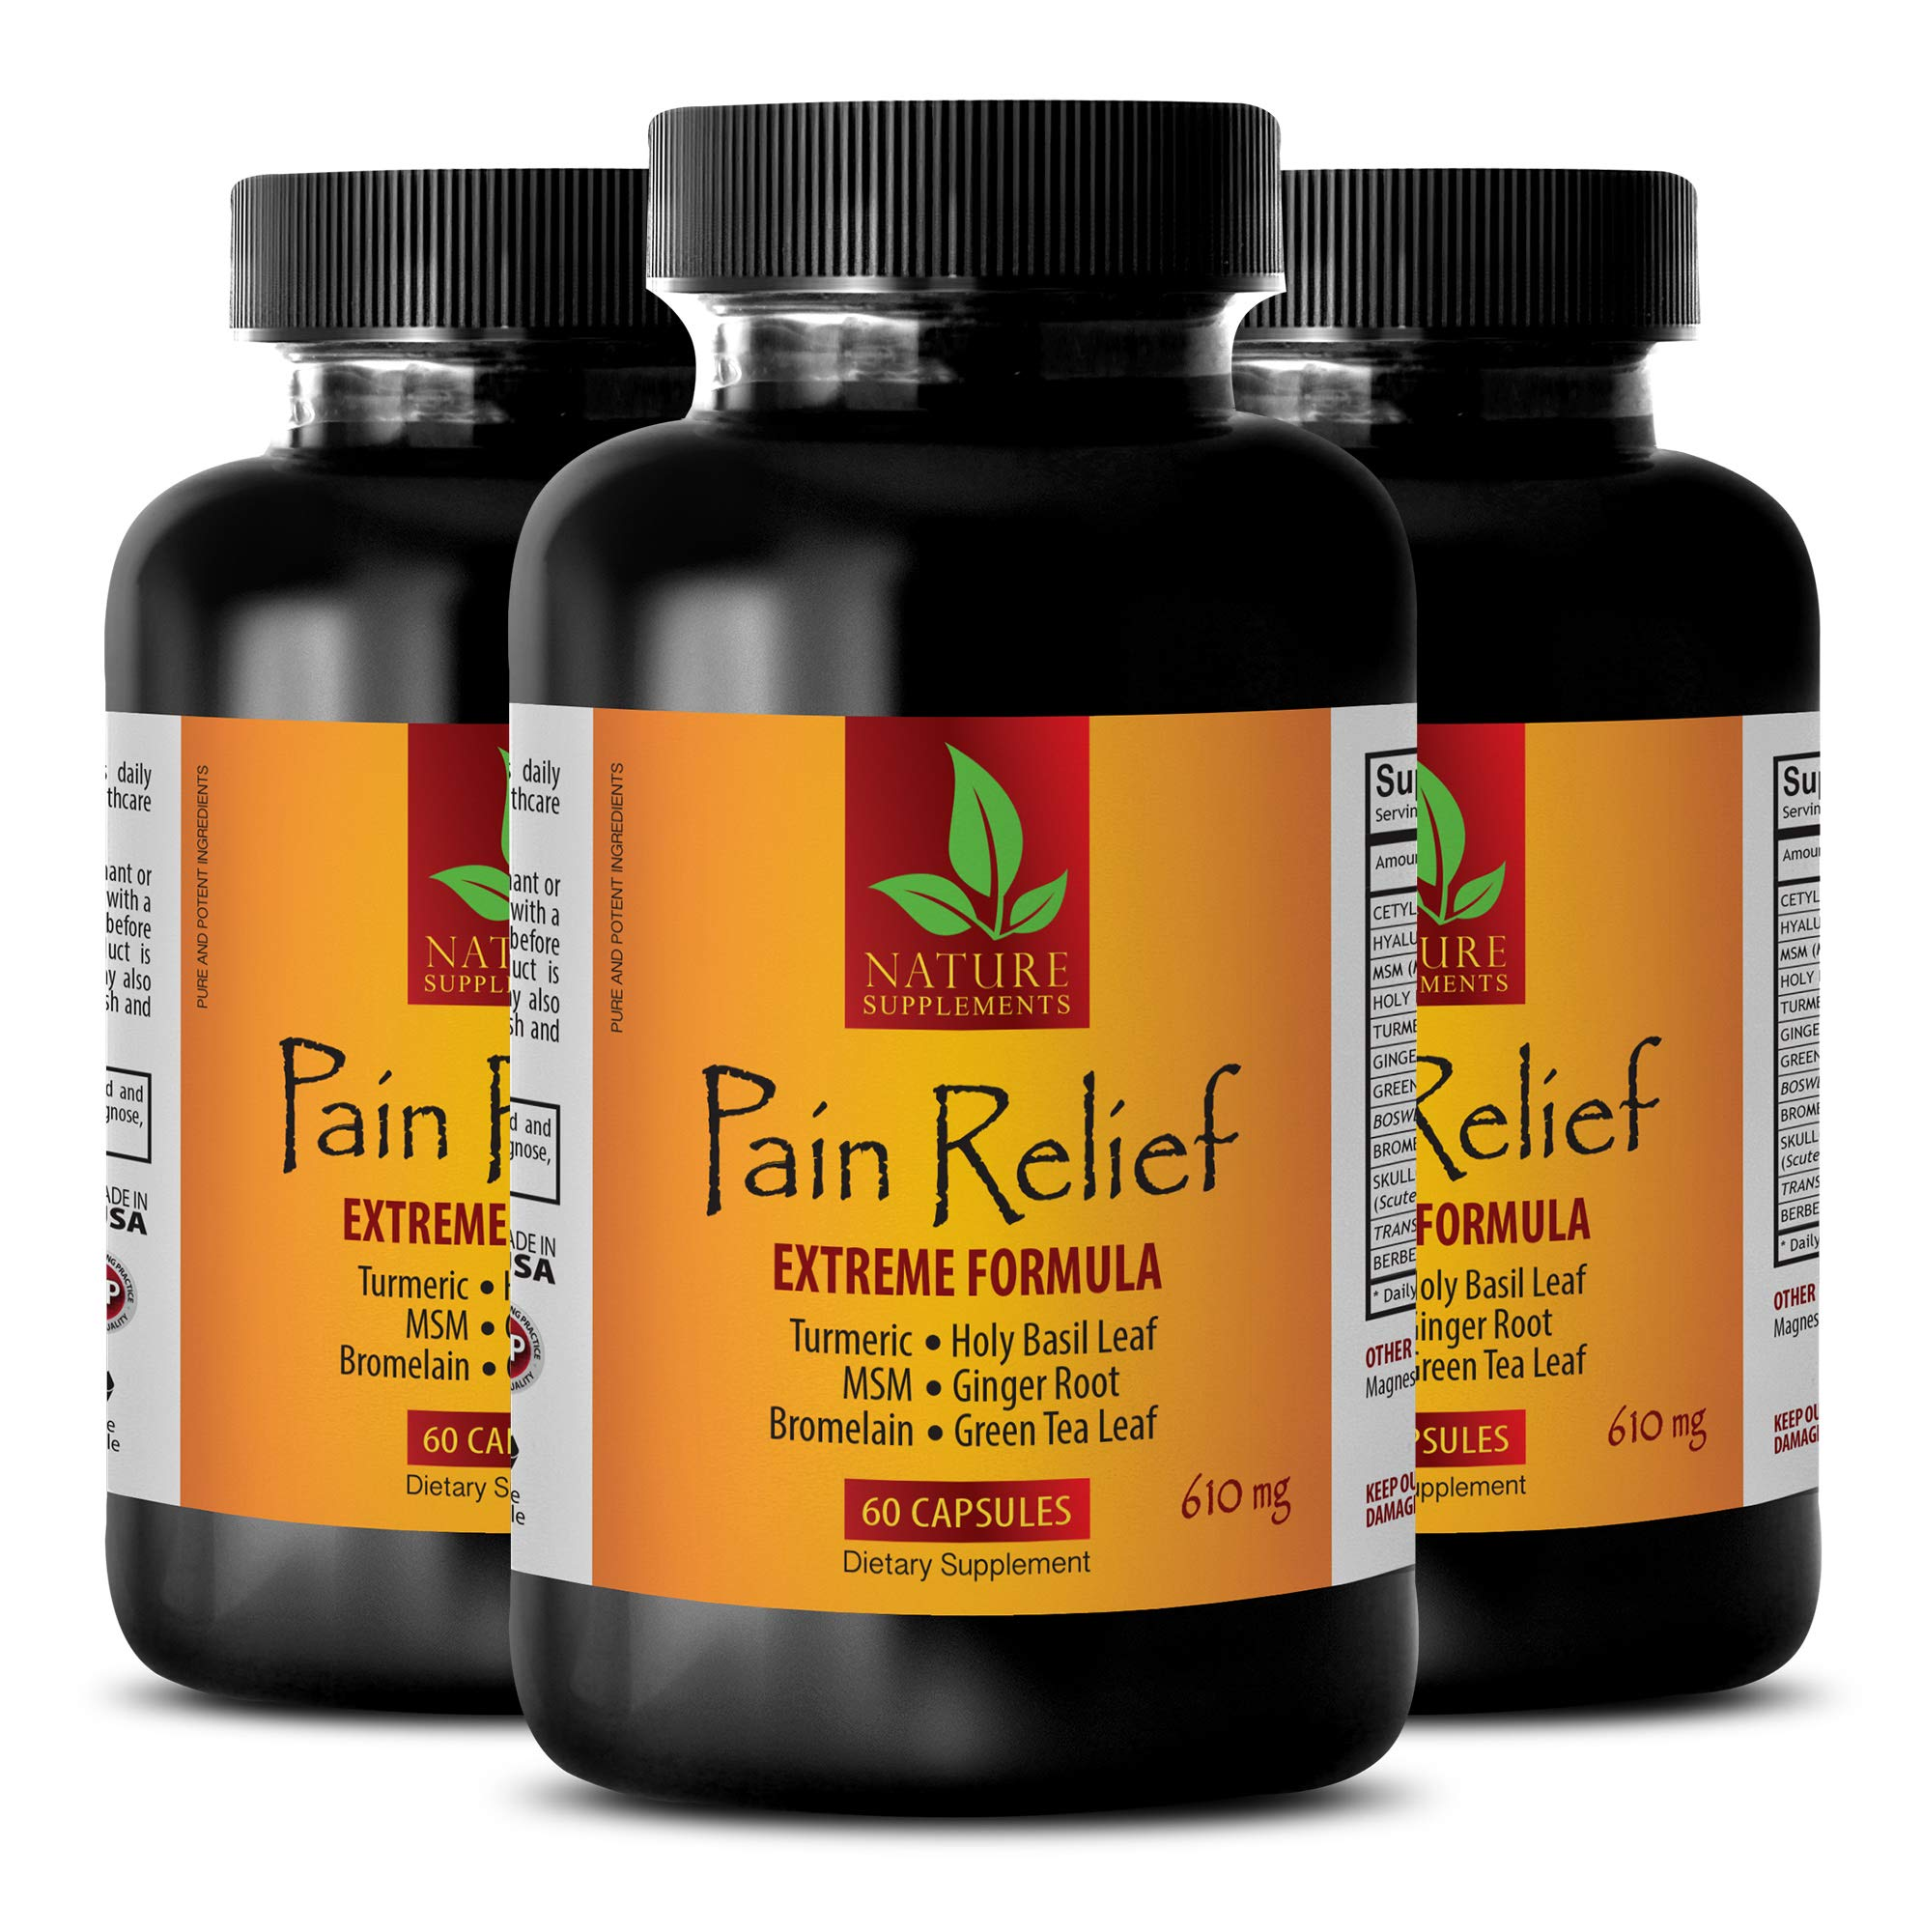 Joint Pain Complex Pills - Pain Relief 610MG - Extreme Formula - antioxidant All in one - 3 Bottles (180 Capsules)